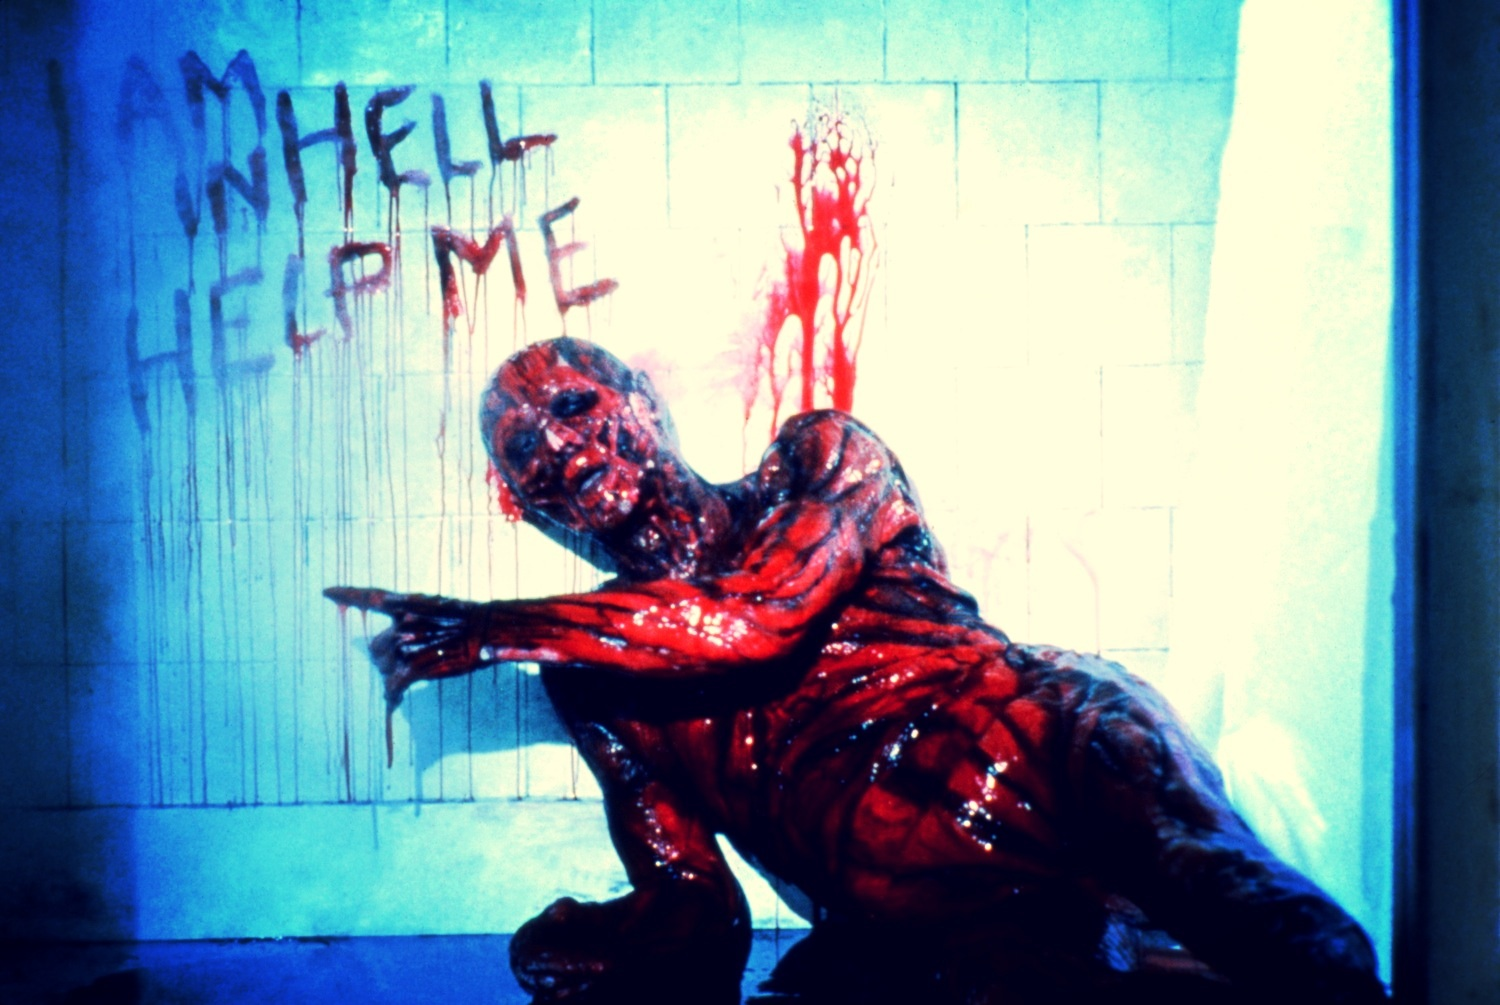 https://i2.wp.com/images6.fanpop.com/image/photos/34500000/Message-from-hell-hellraiser-34568631-1500-1005.jpg